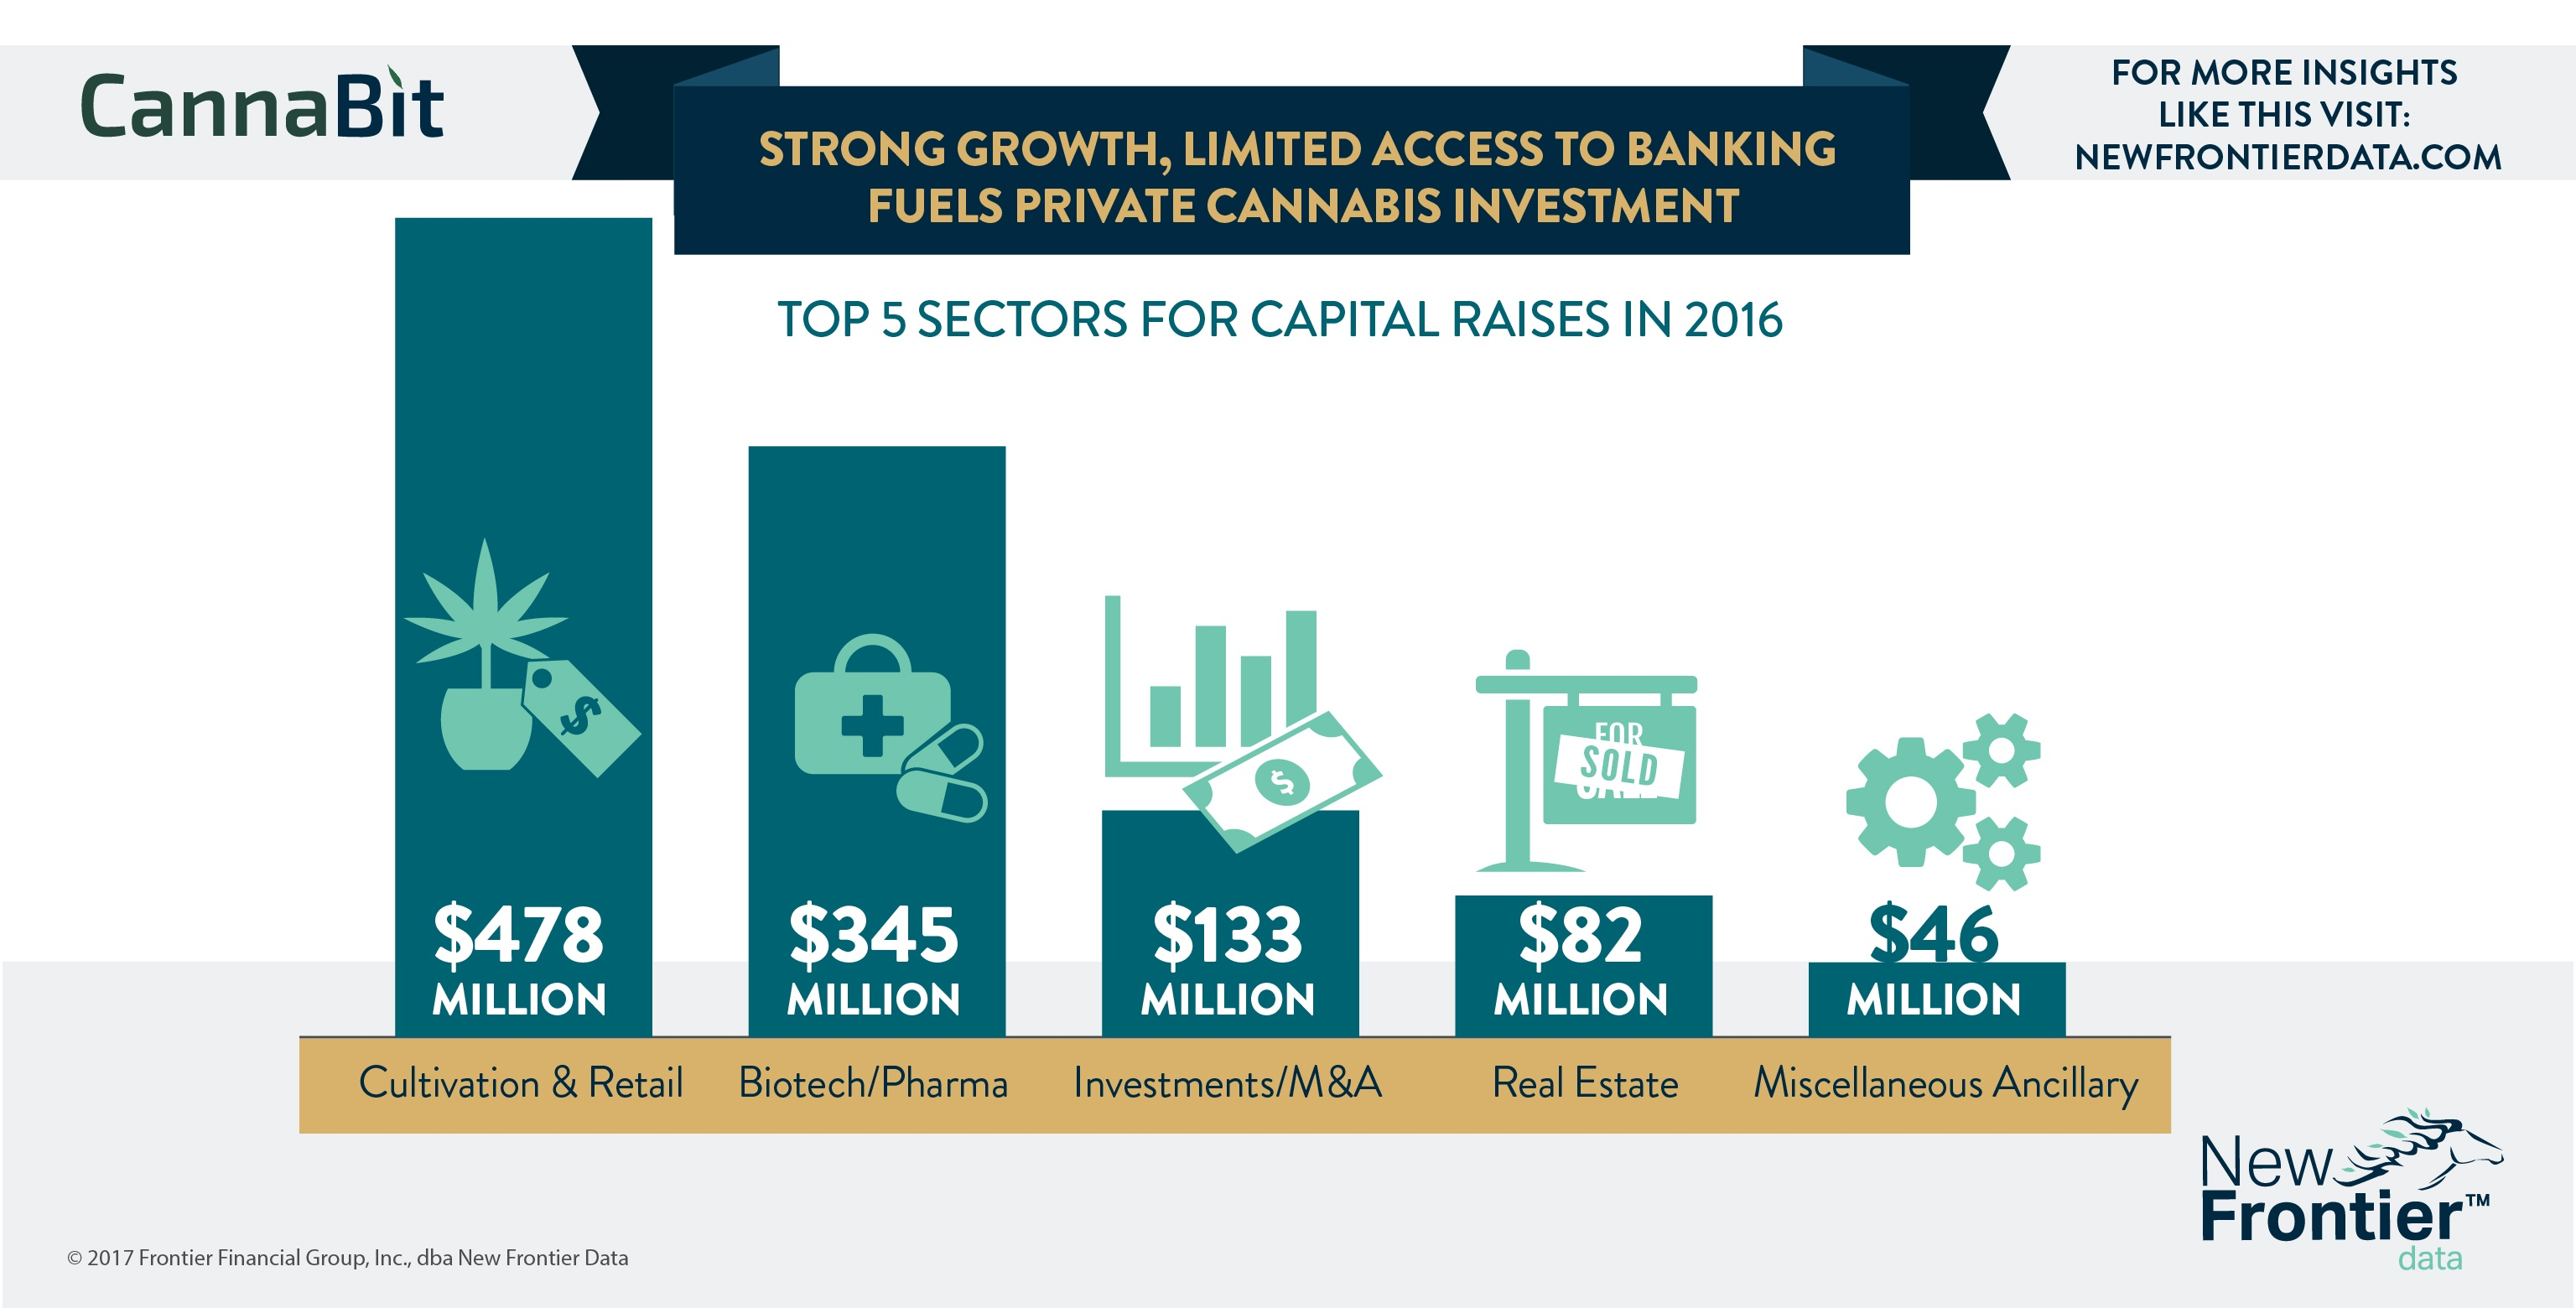 Cannabit: Strong Growth, Limited Access to Banking Fuels Private Cannabis Investment / 06252017